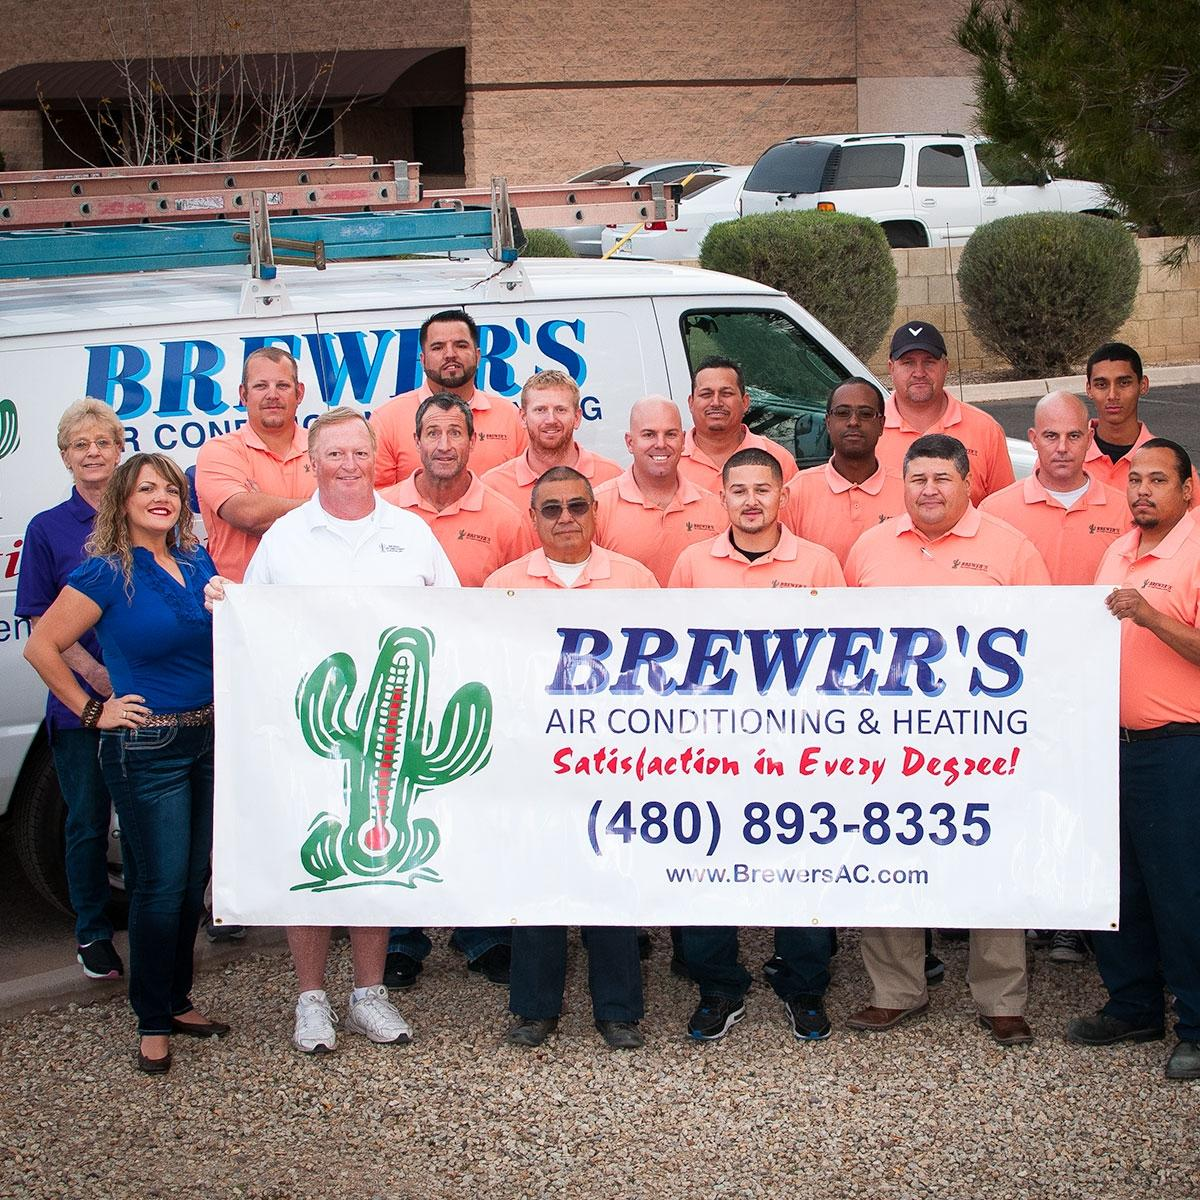 Brewer's Air Conditioning & Heating